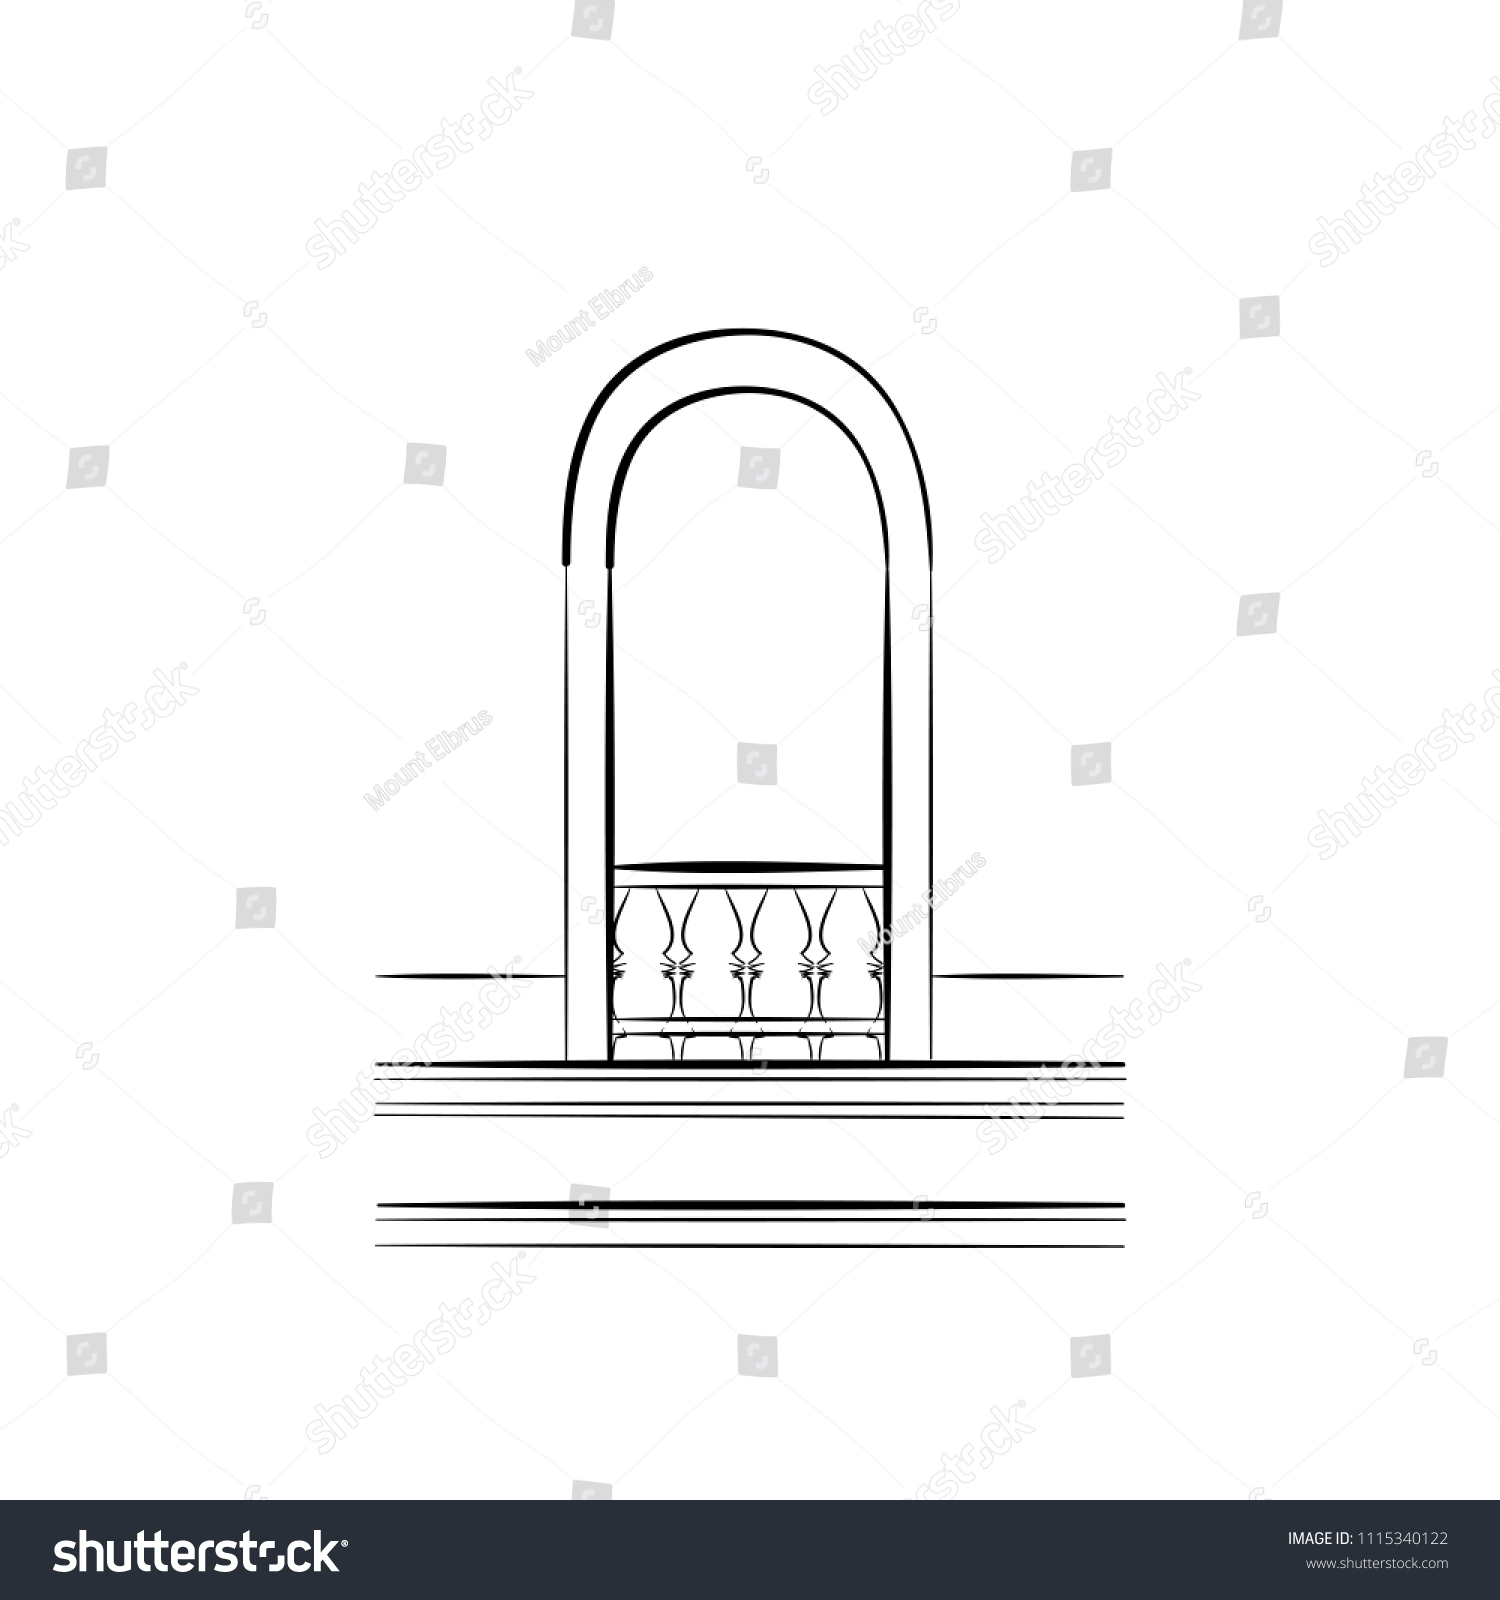 hight resolution of monochrome sketch of a window arch frame of a balcony door free hand draw